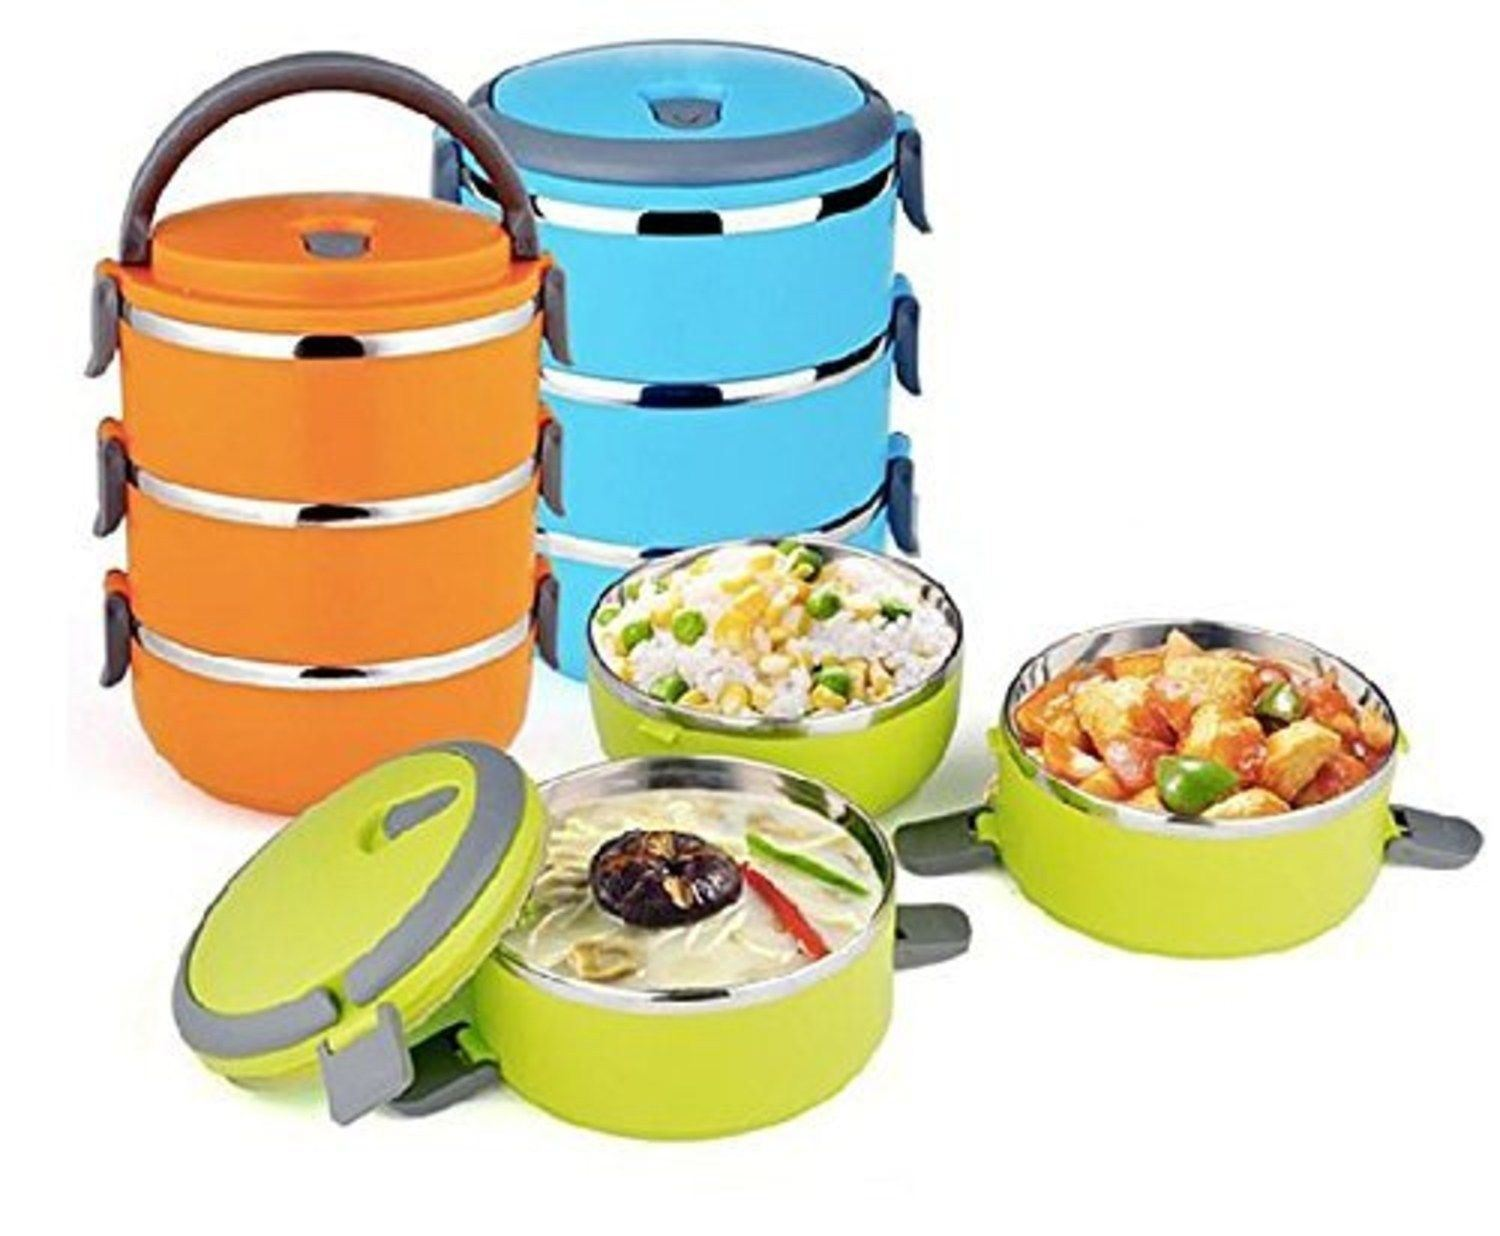 3 compartment lunch box food carrier stainless steel bowls keeps food fresh warm ebay. Black Bedroom Furniture Sets. Home Design Ideas